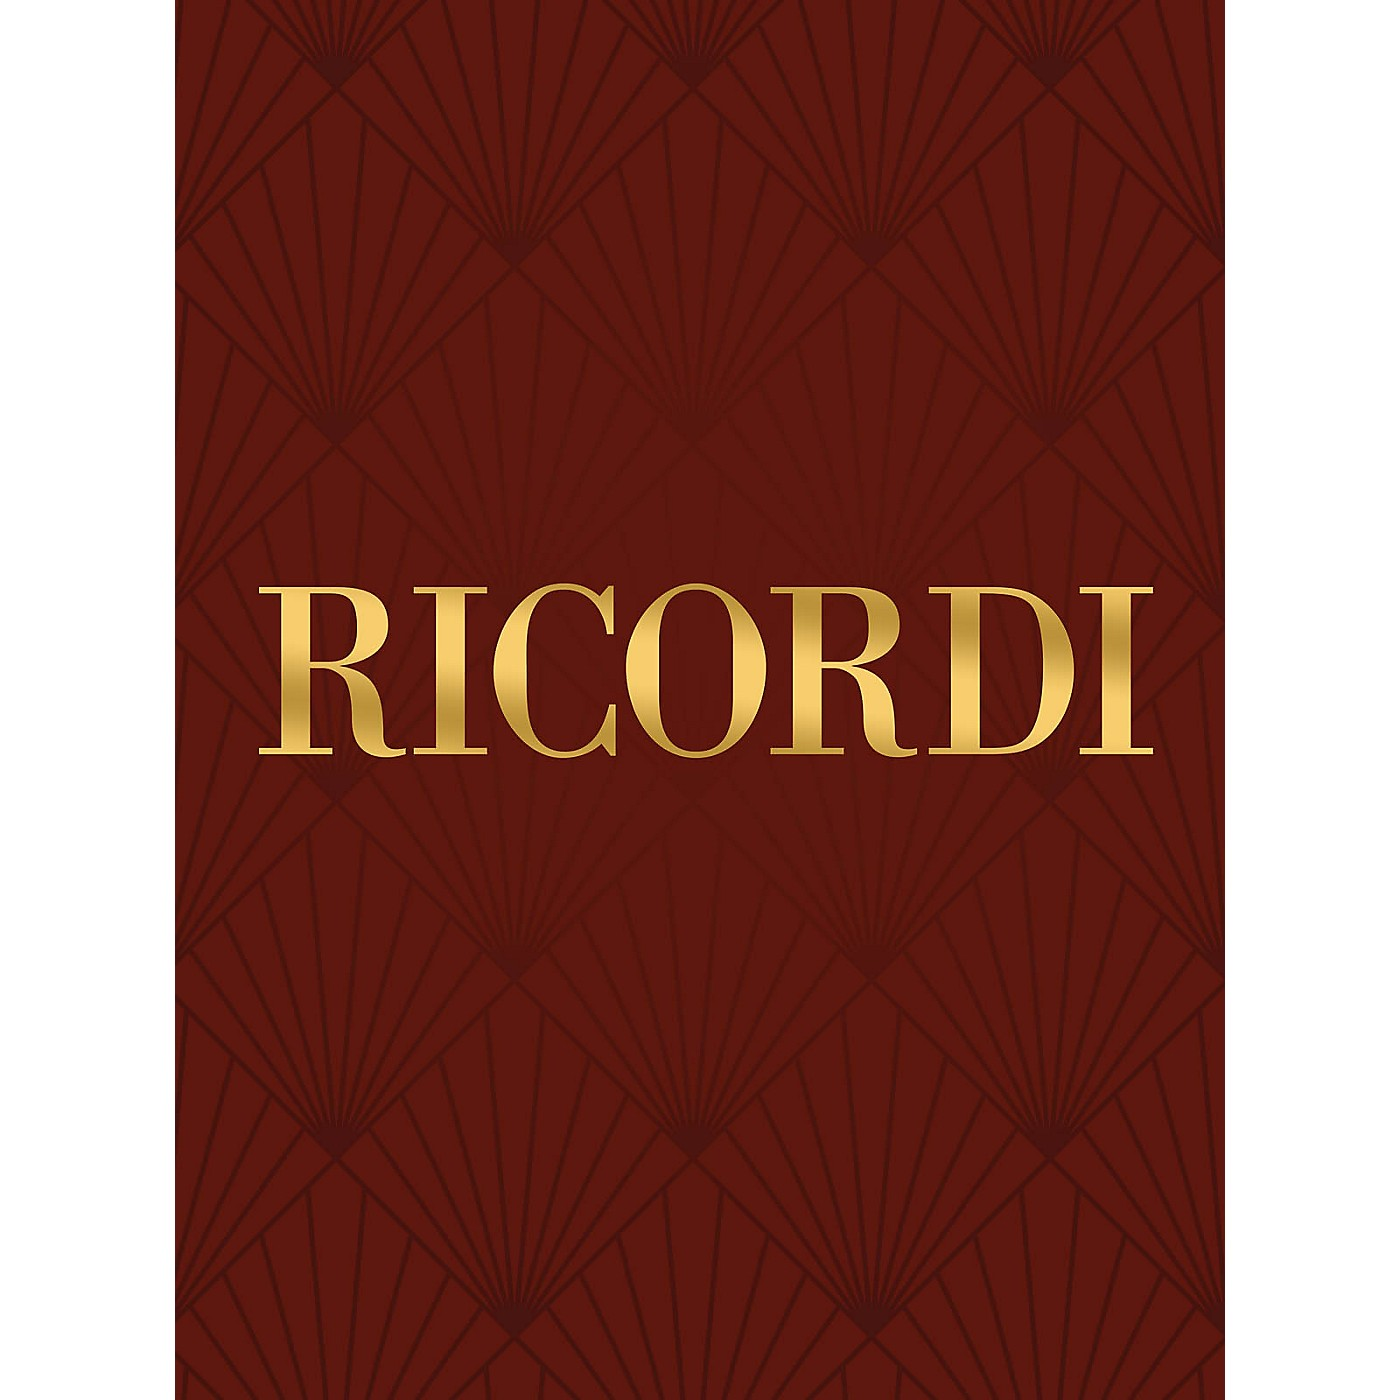 Ricordi Conc in C Maj for Piccolo Strings and Basso Continuo RV443 Woodwind by Vivaldi Edited by Vilmos Lesko thumbnail